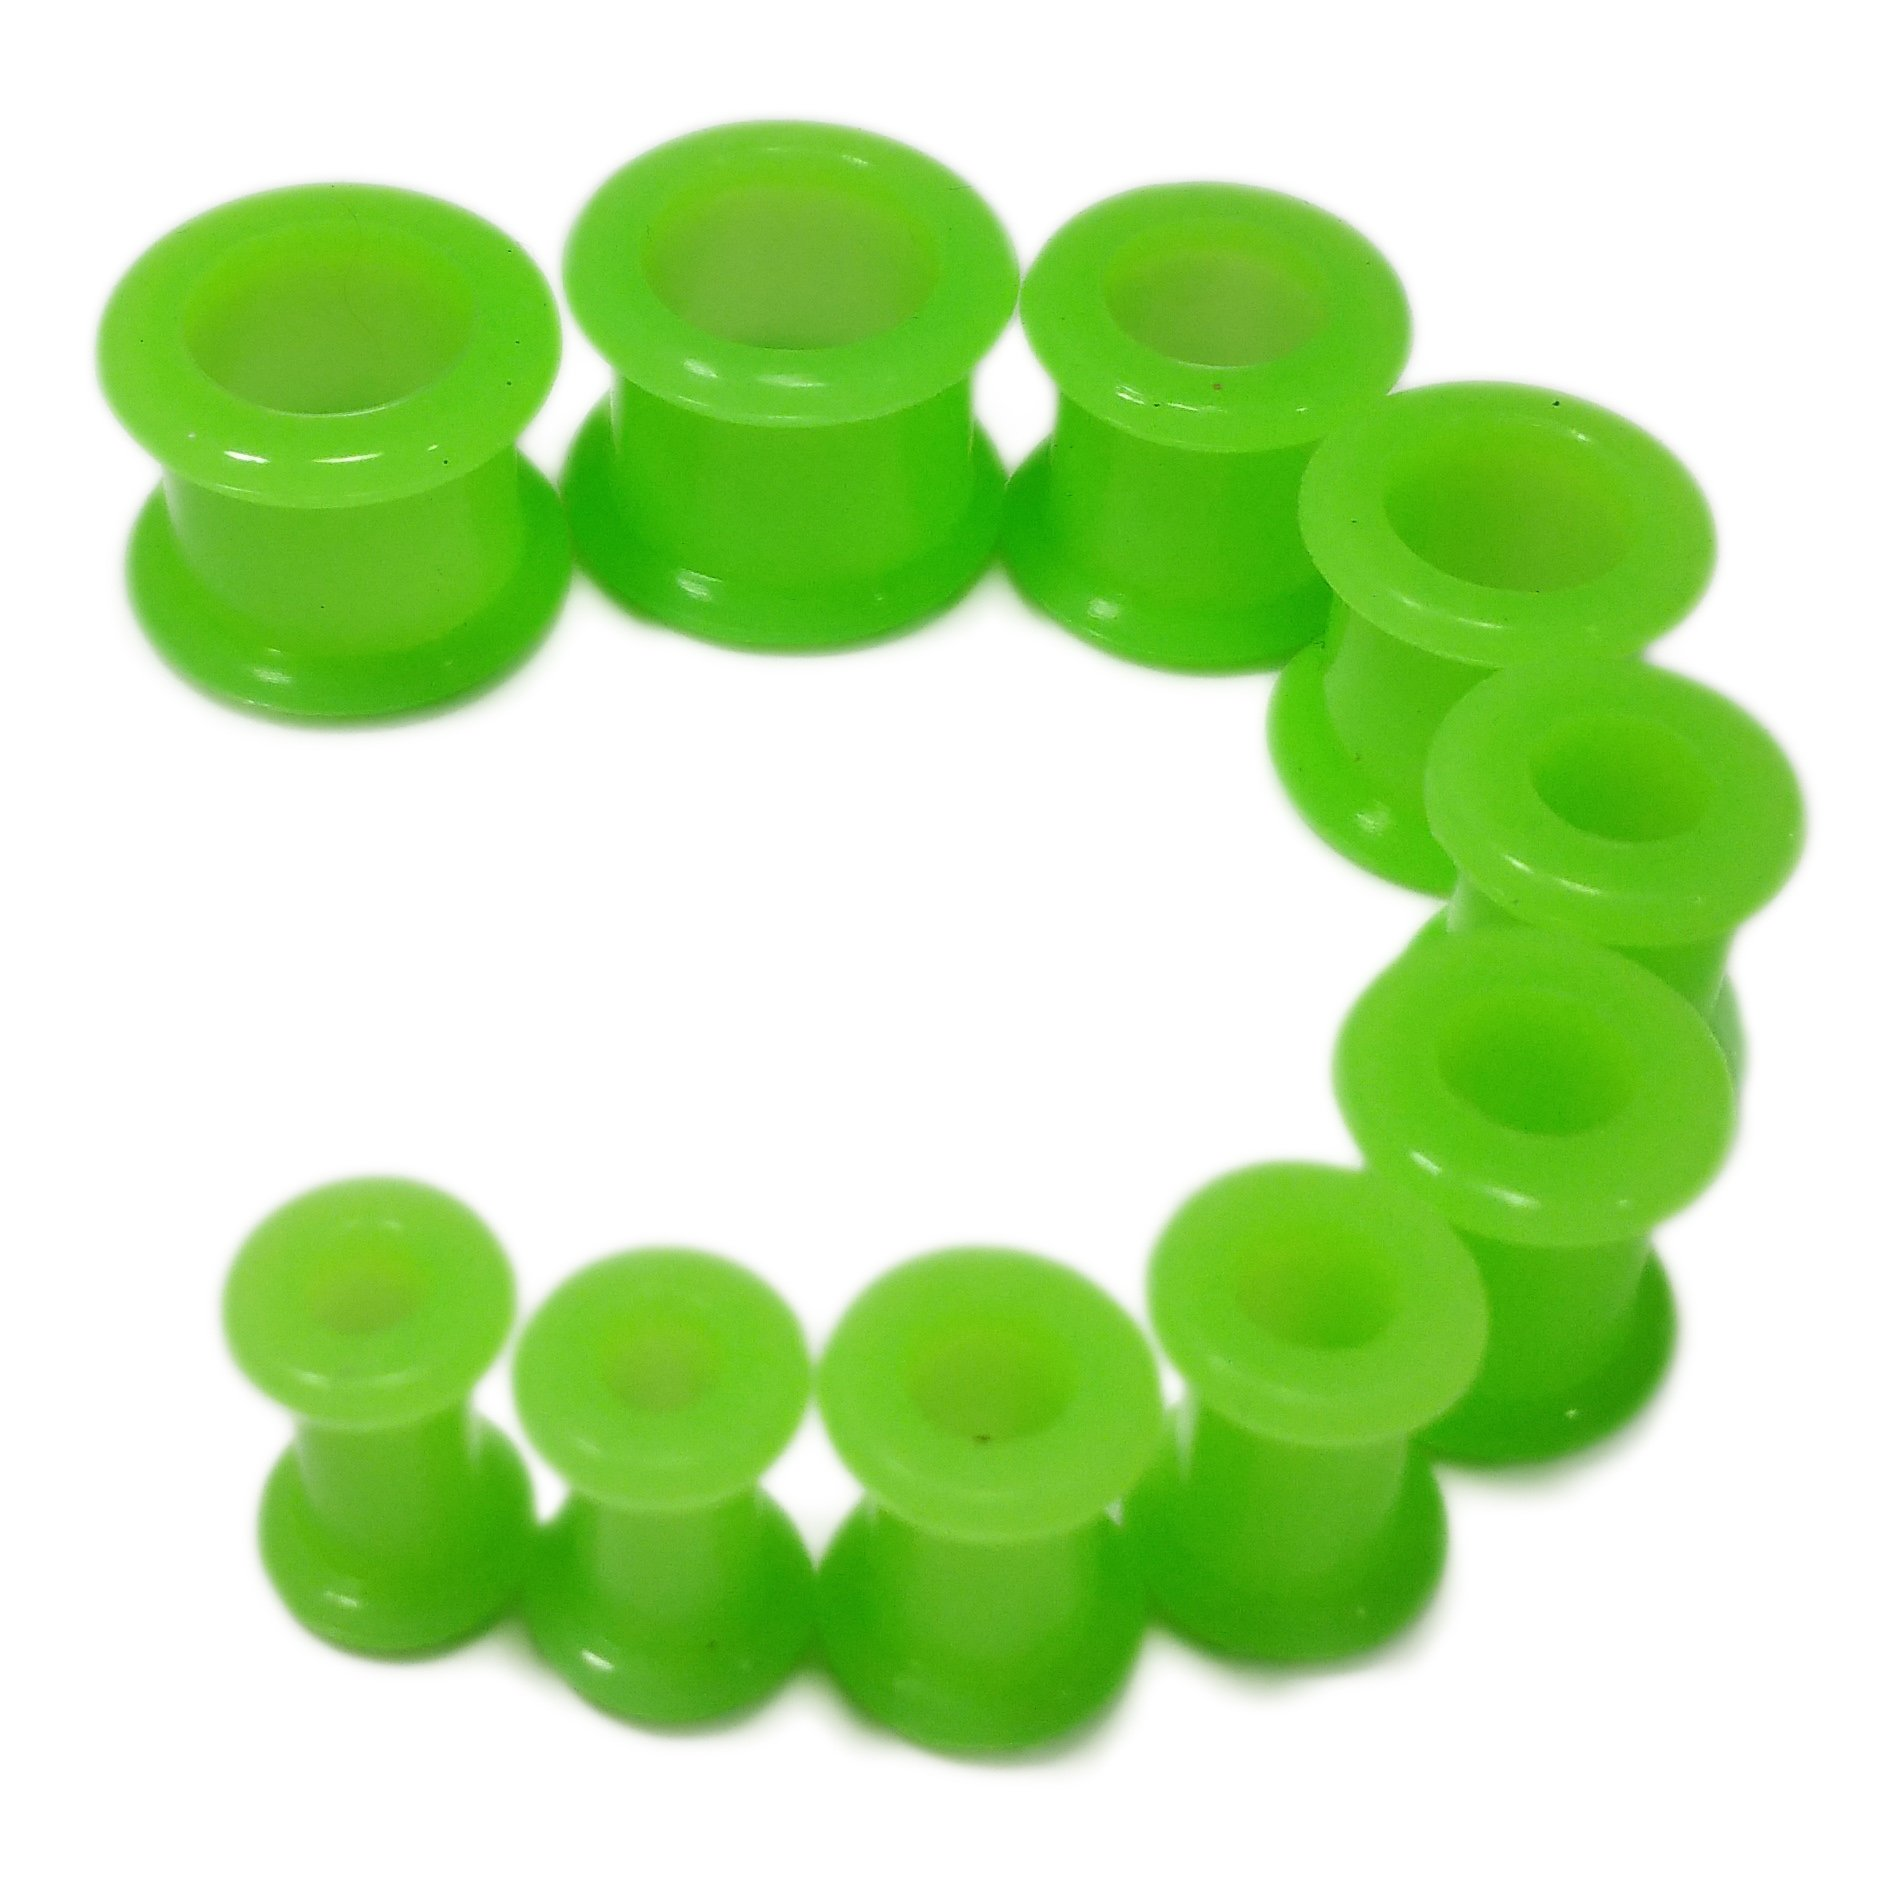 PAIR 12G-1/2'' Green Silicone Tunnels Plugs Guages (2g (6mm))